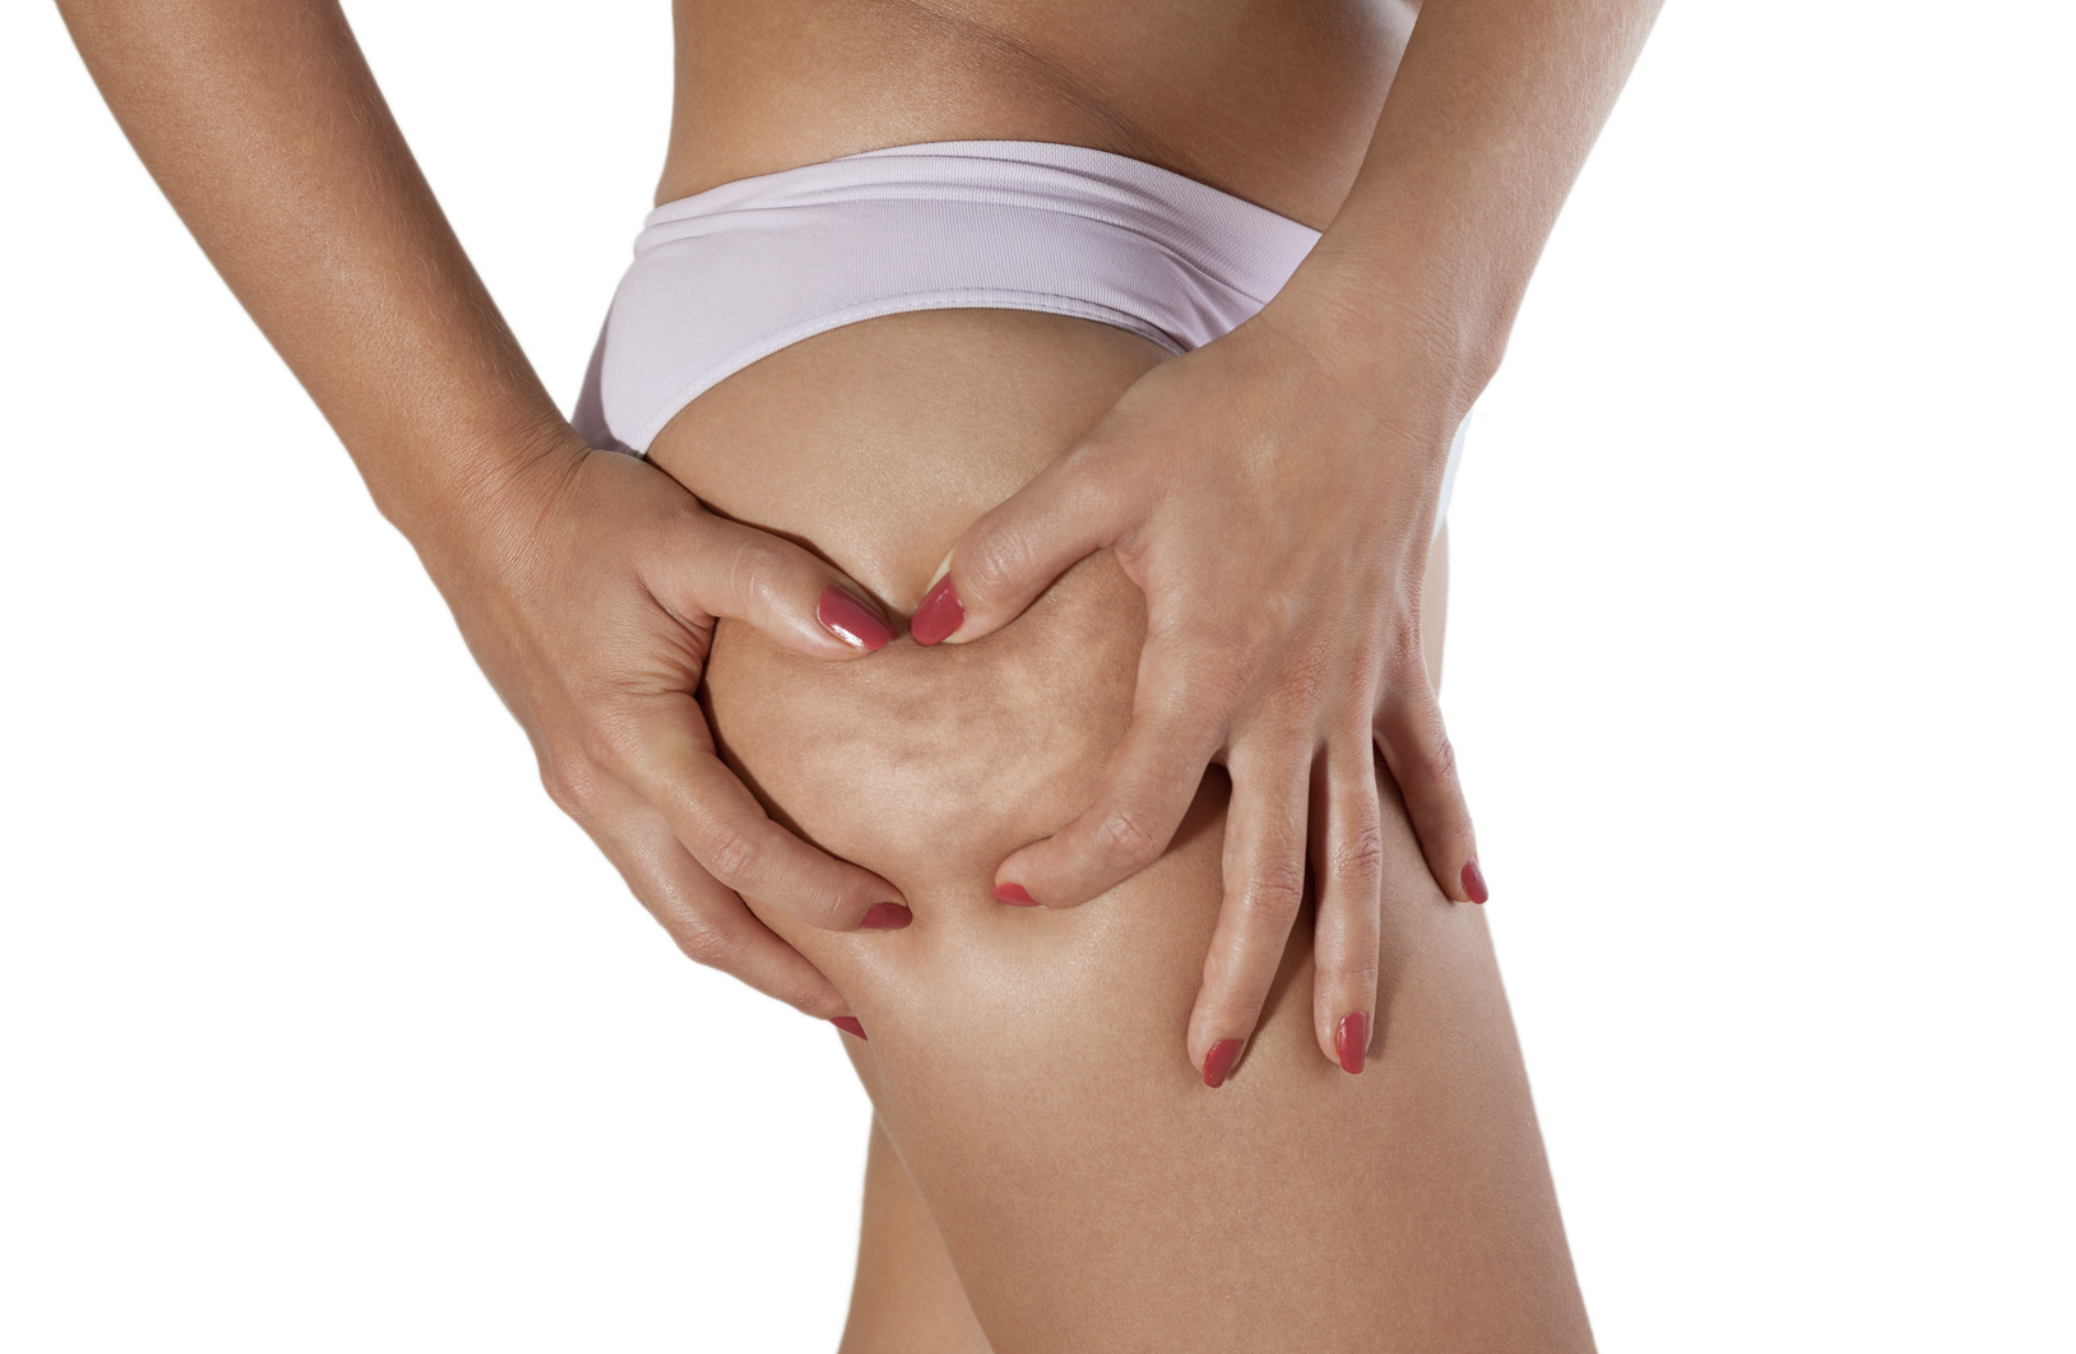 Close up image of a woman squeezing her upper thigh